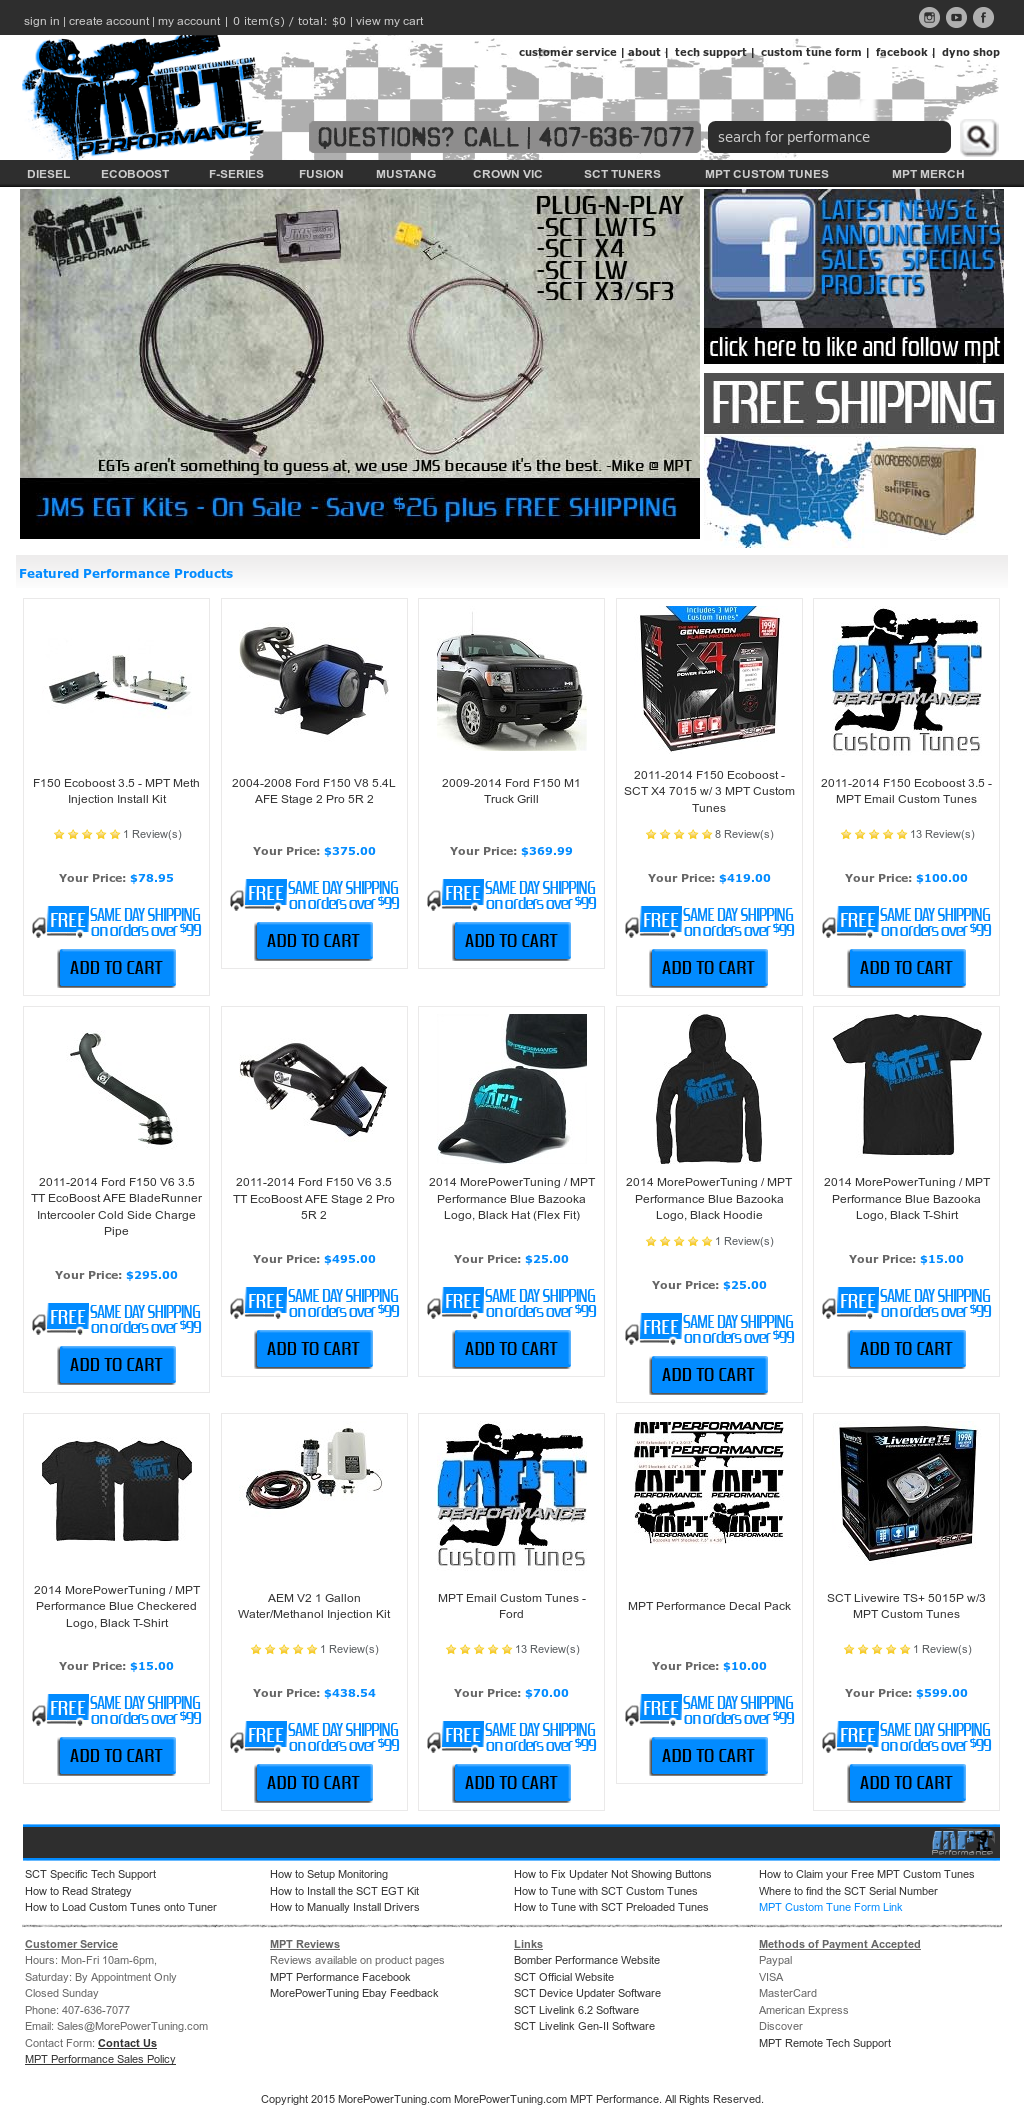 Morepowertuning Competitors, Revenue and Employees - Owler